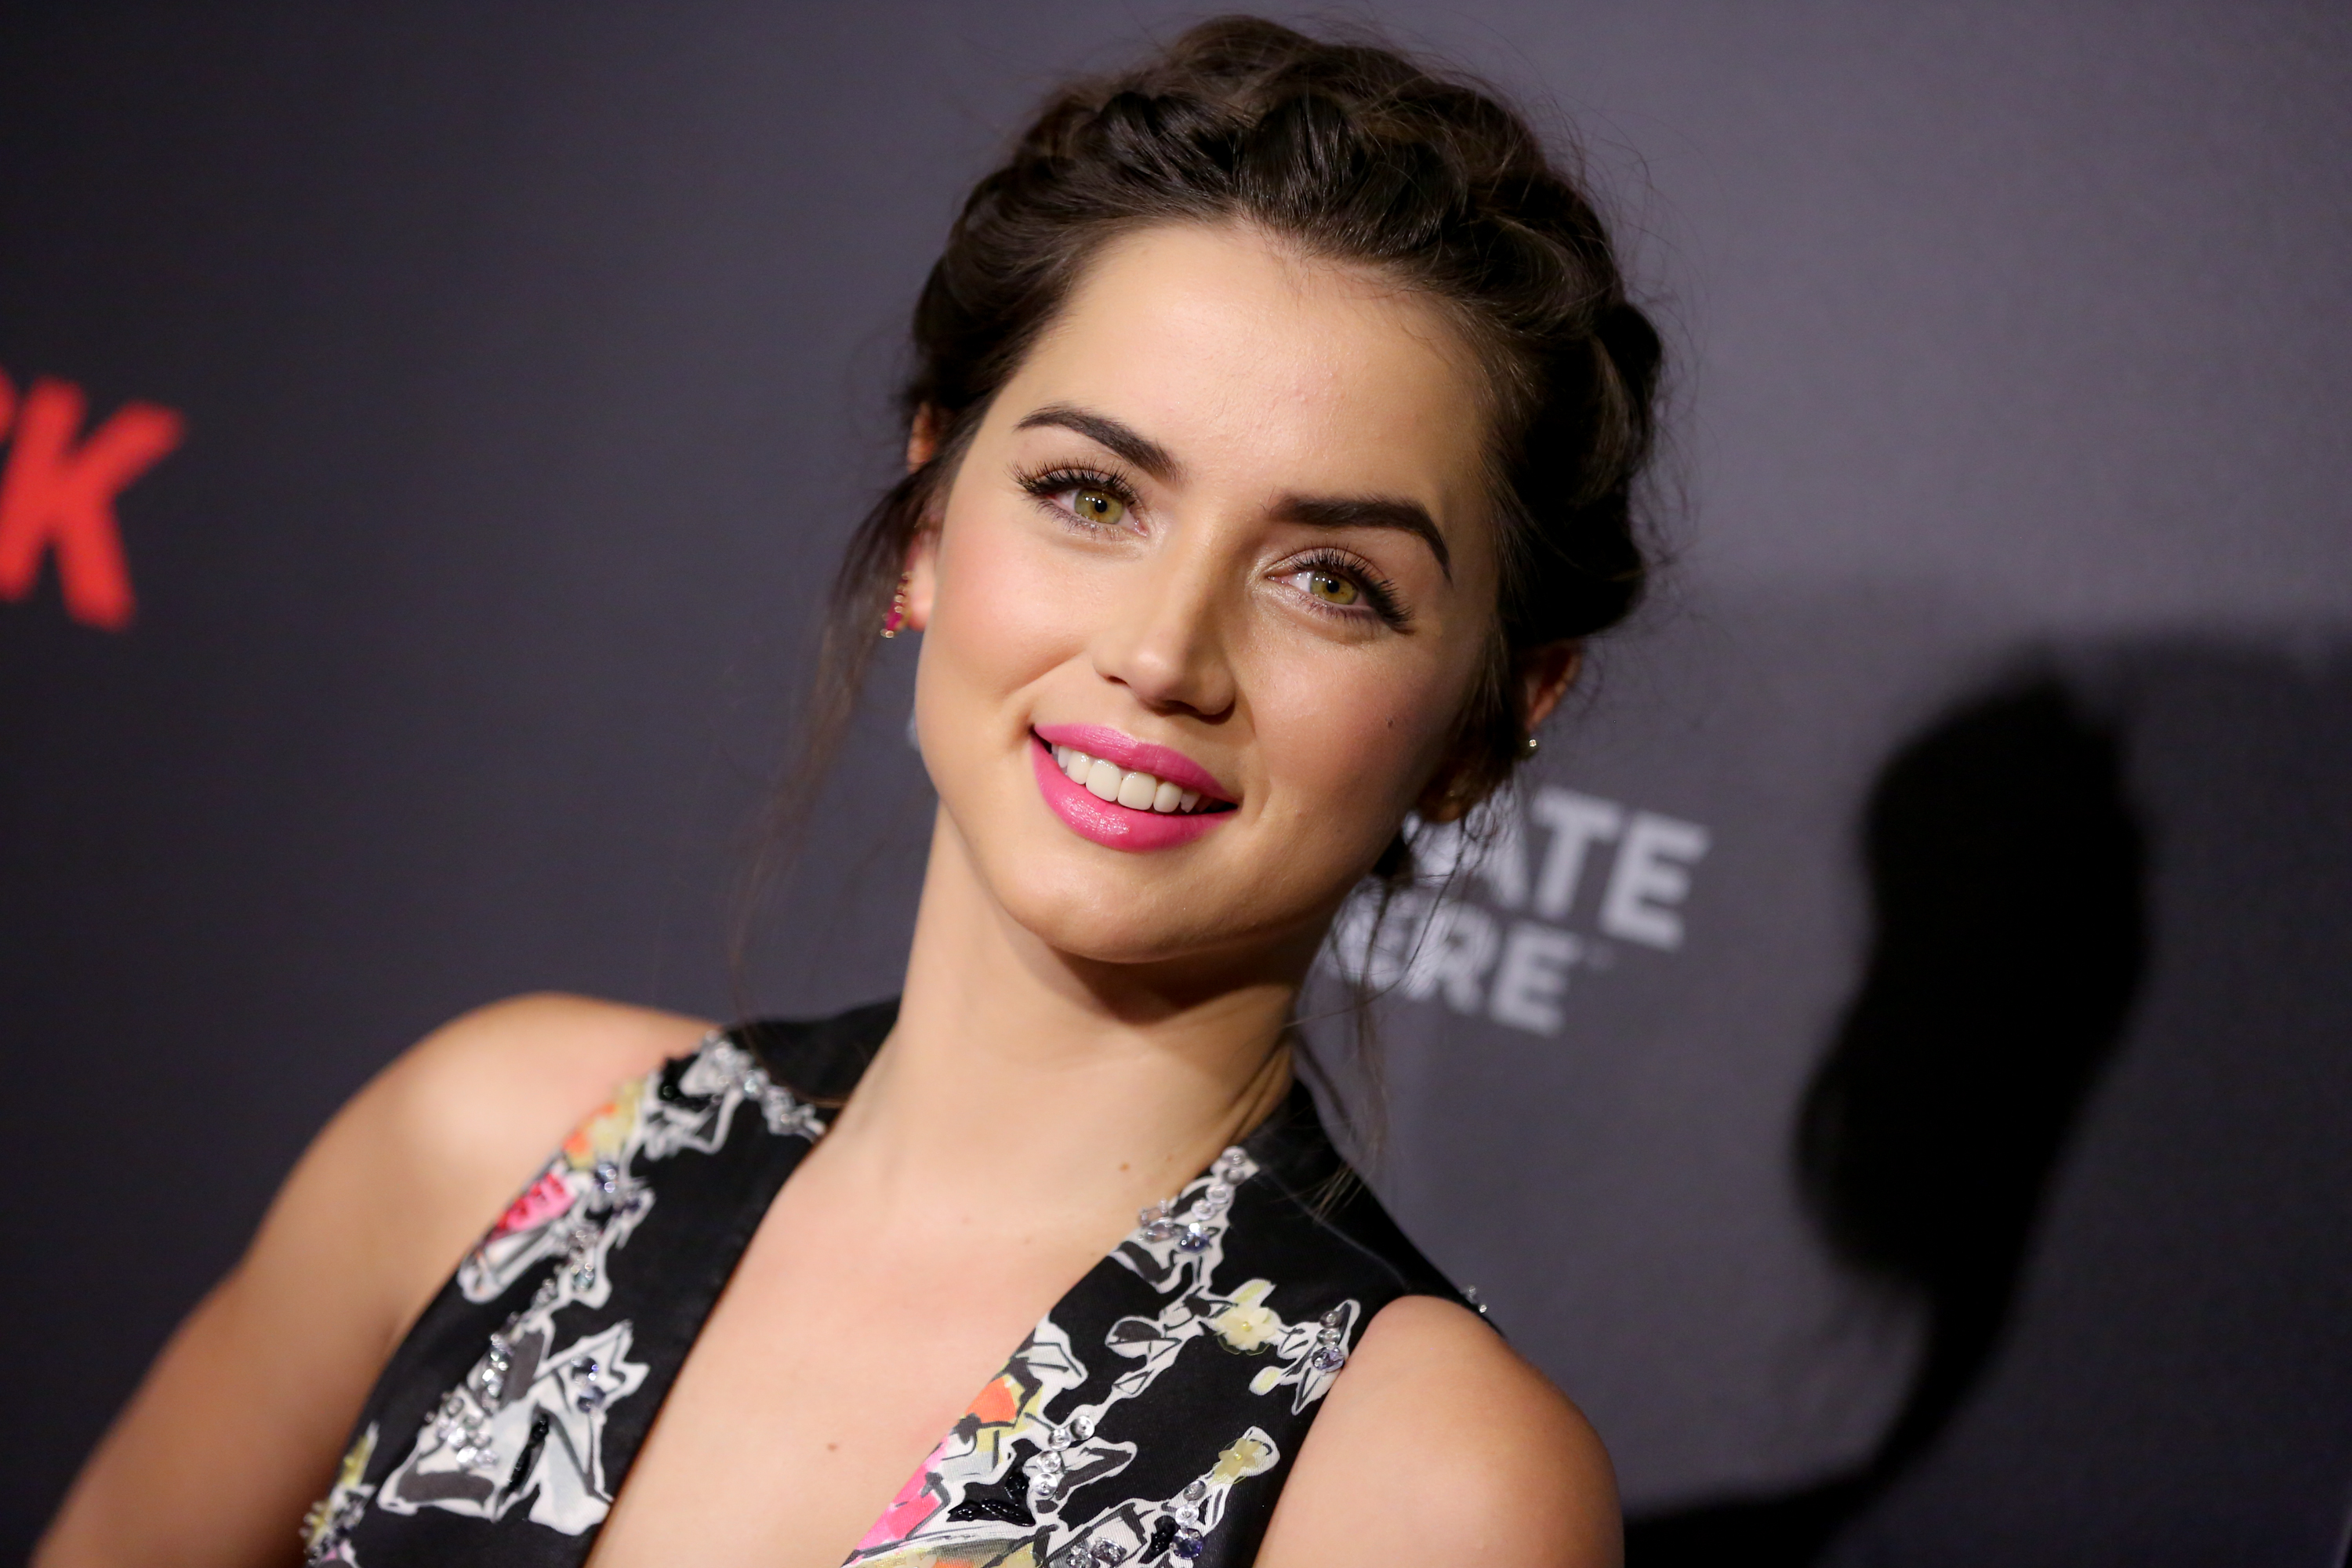 Ana De Armas Hd Wallpapers Free Download In High Quality And